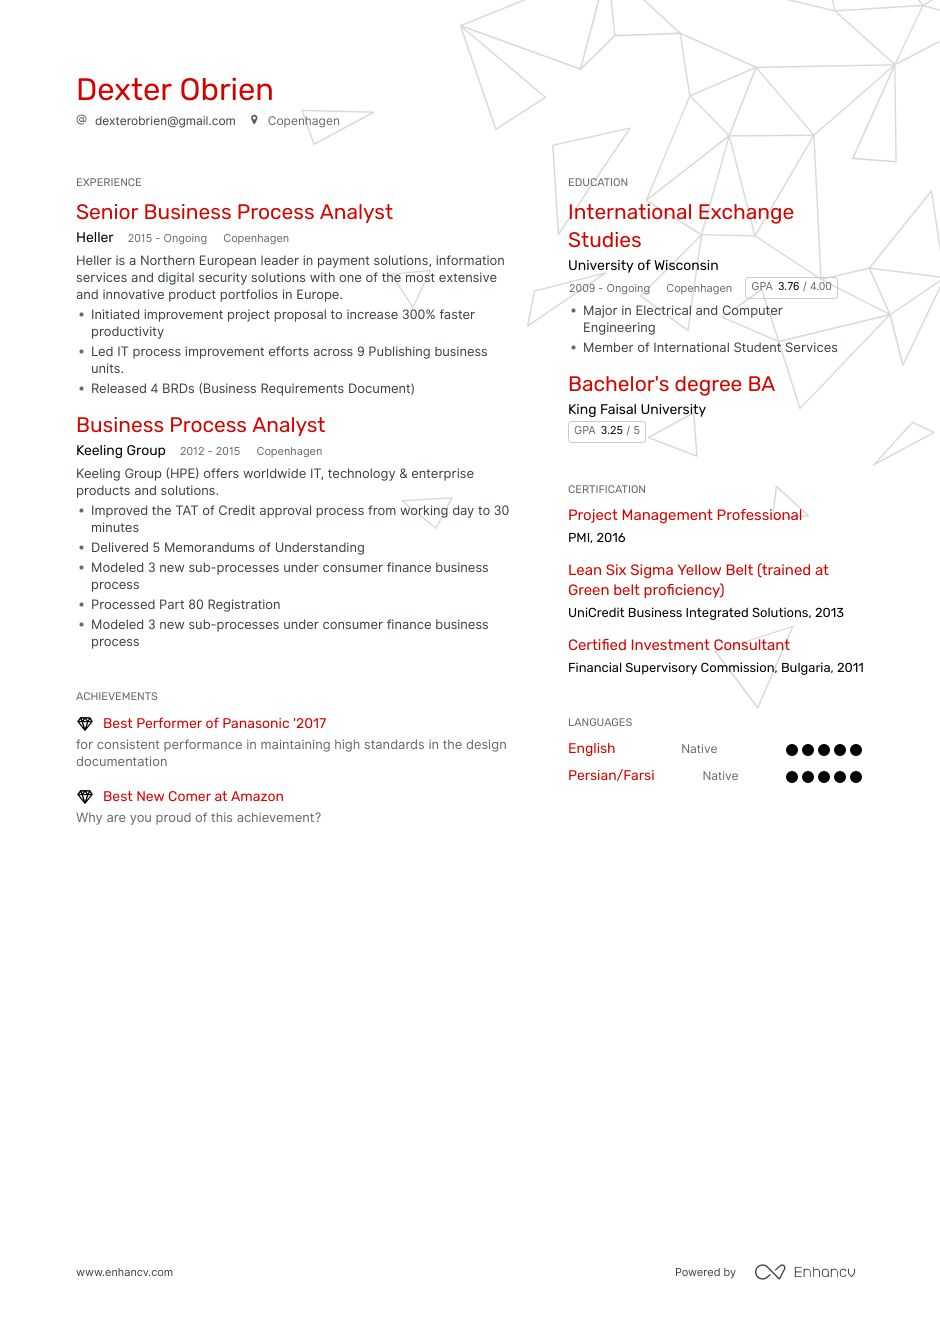 business process analyst resume example